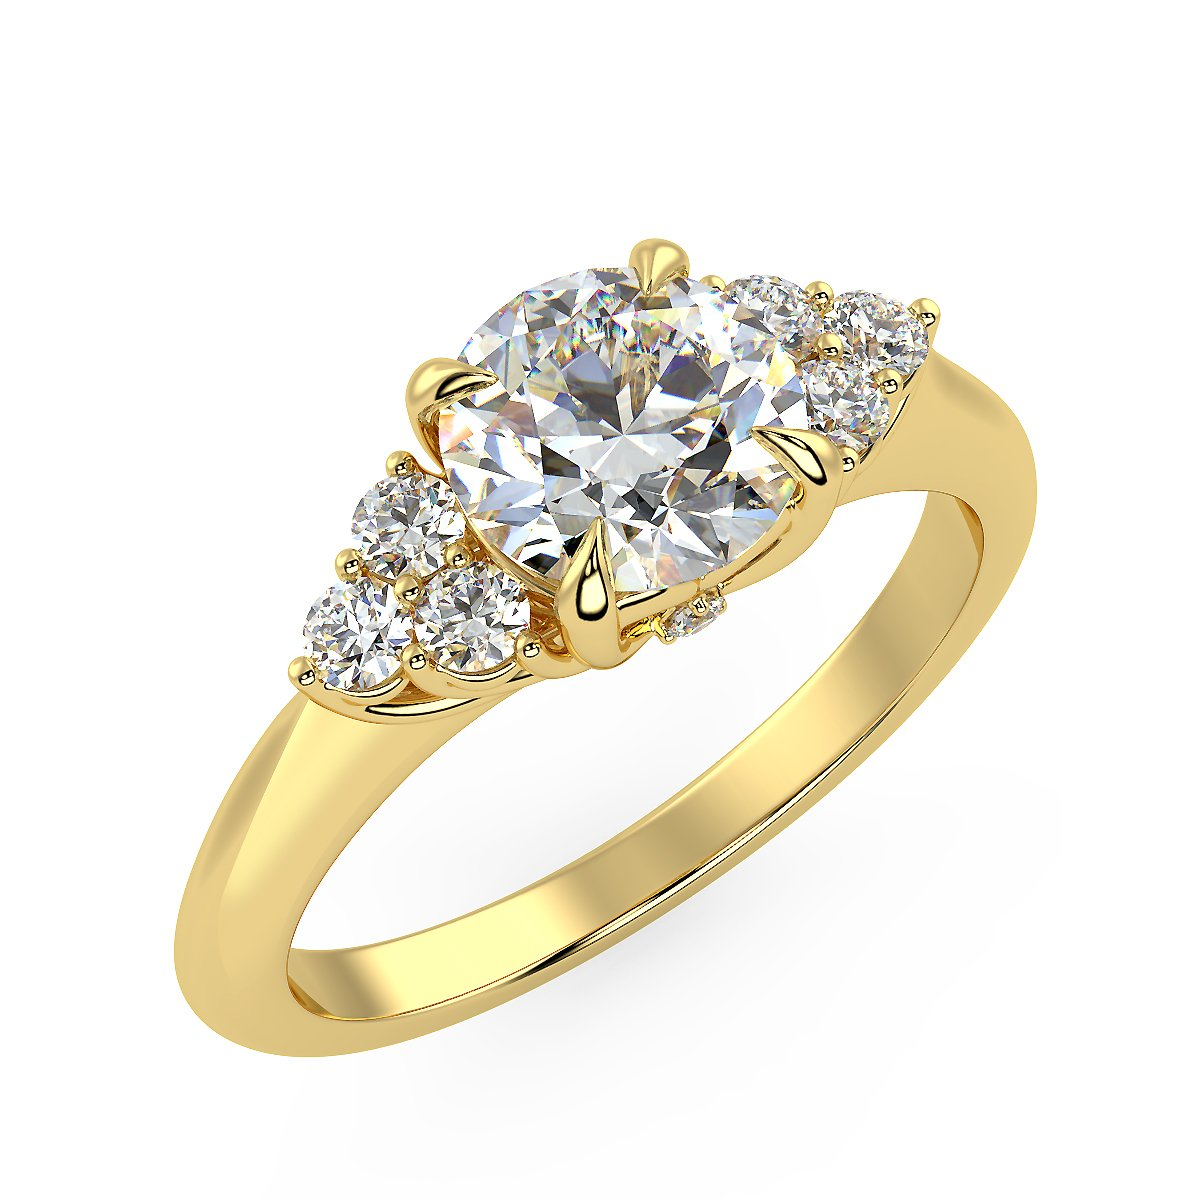 Zania Engagement Ring in Yellow Gold